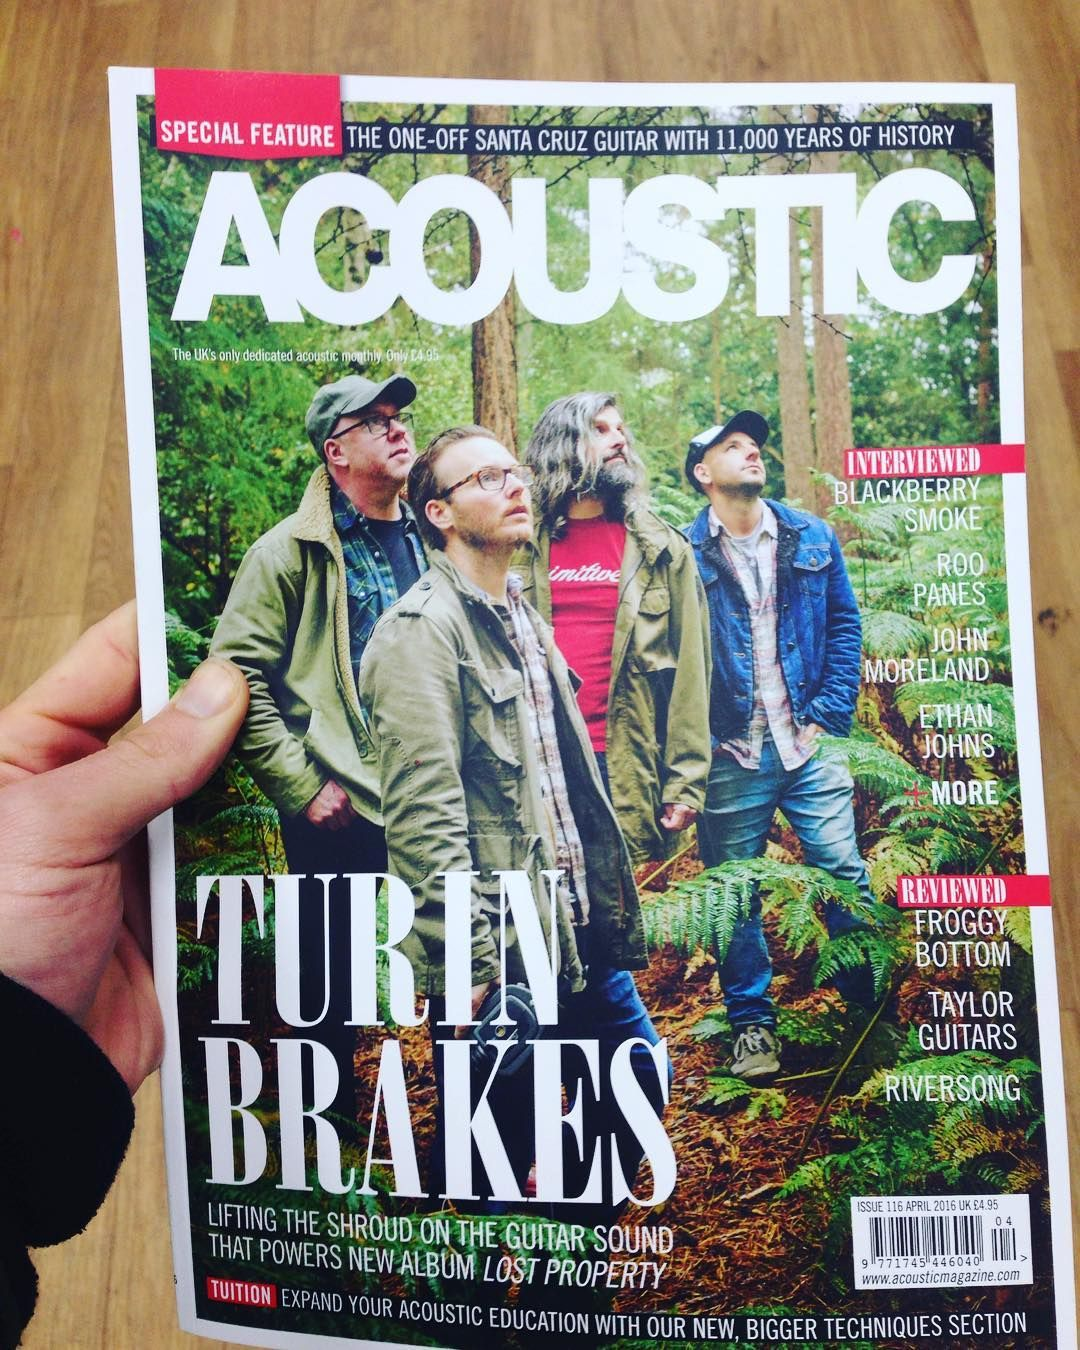 Turin Breaks covers Acoustic Magazine!